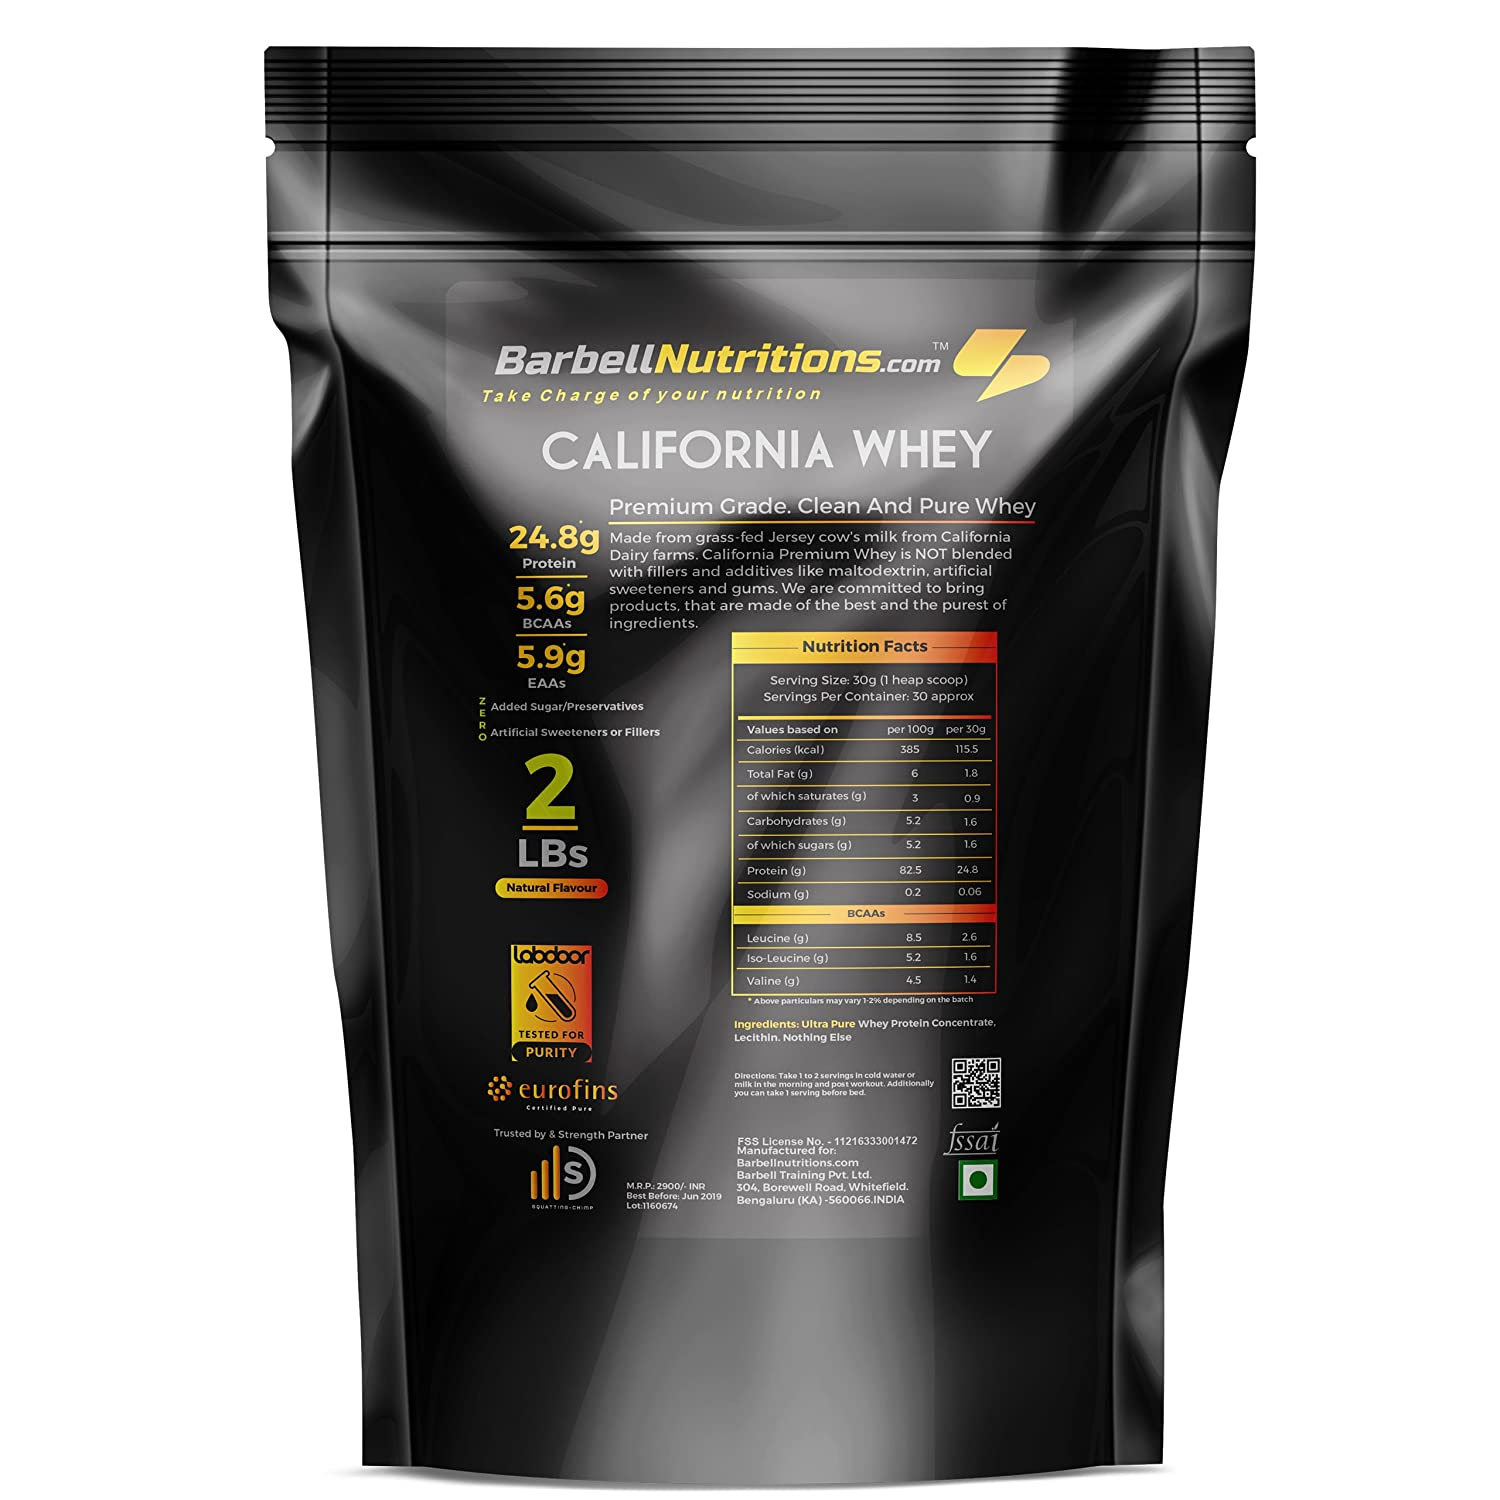 f1abd4e487d74 Barbell Nutrition s California Whey All Clean 100% Whey Protein - Natural  Flavour - 2 Lbs (907 g)  Amazon.in  Health   Personal Care